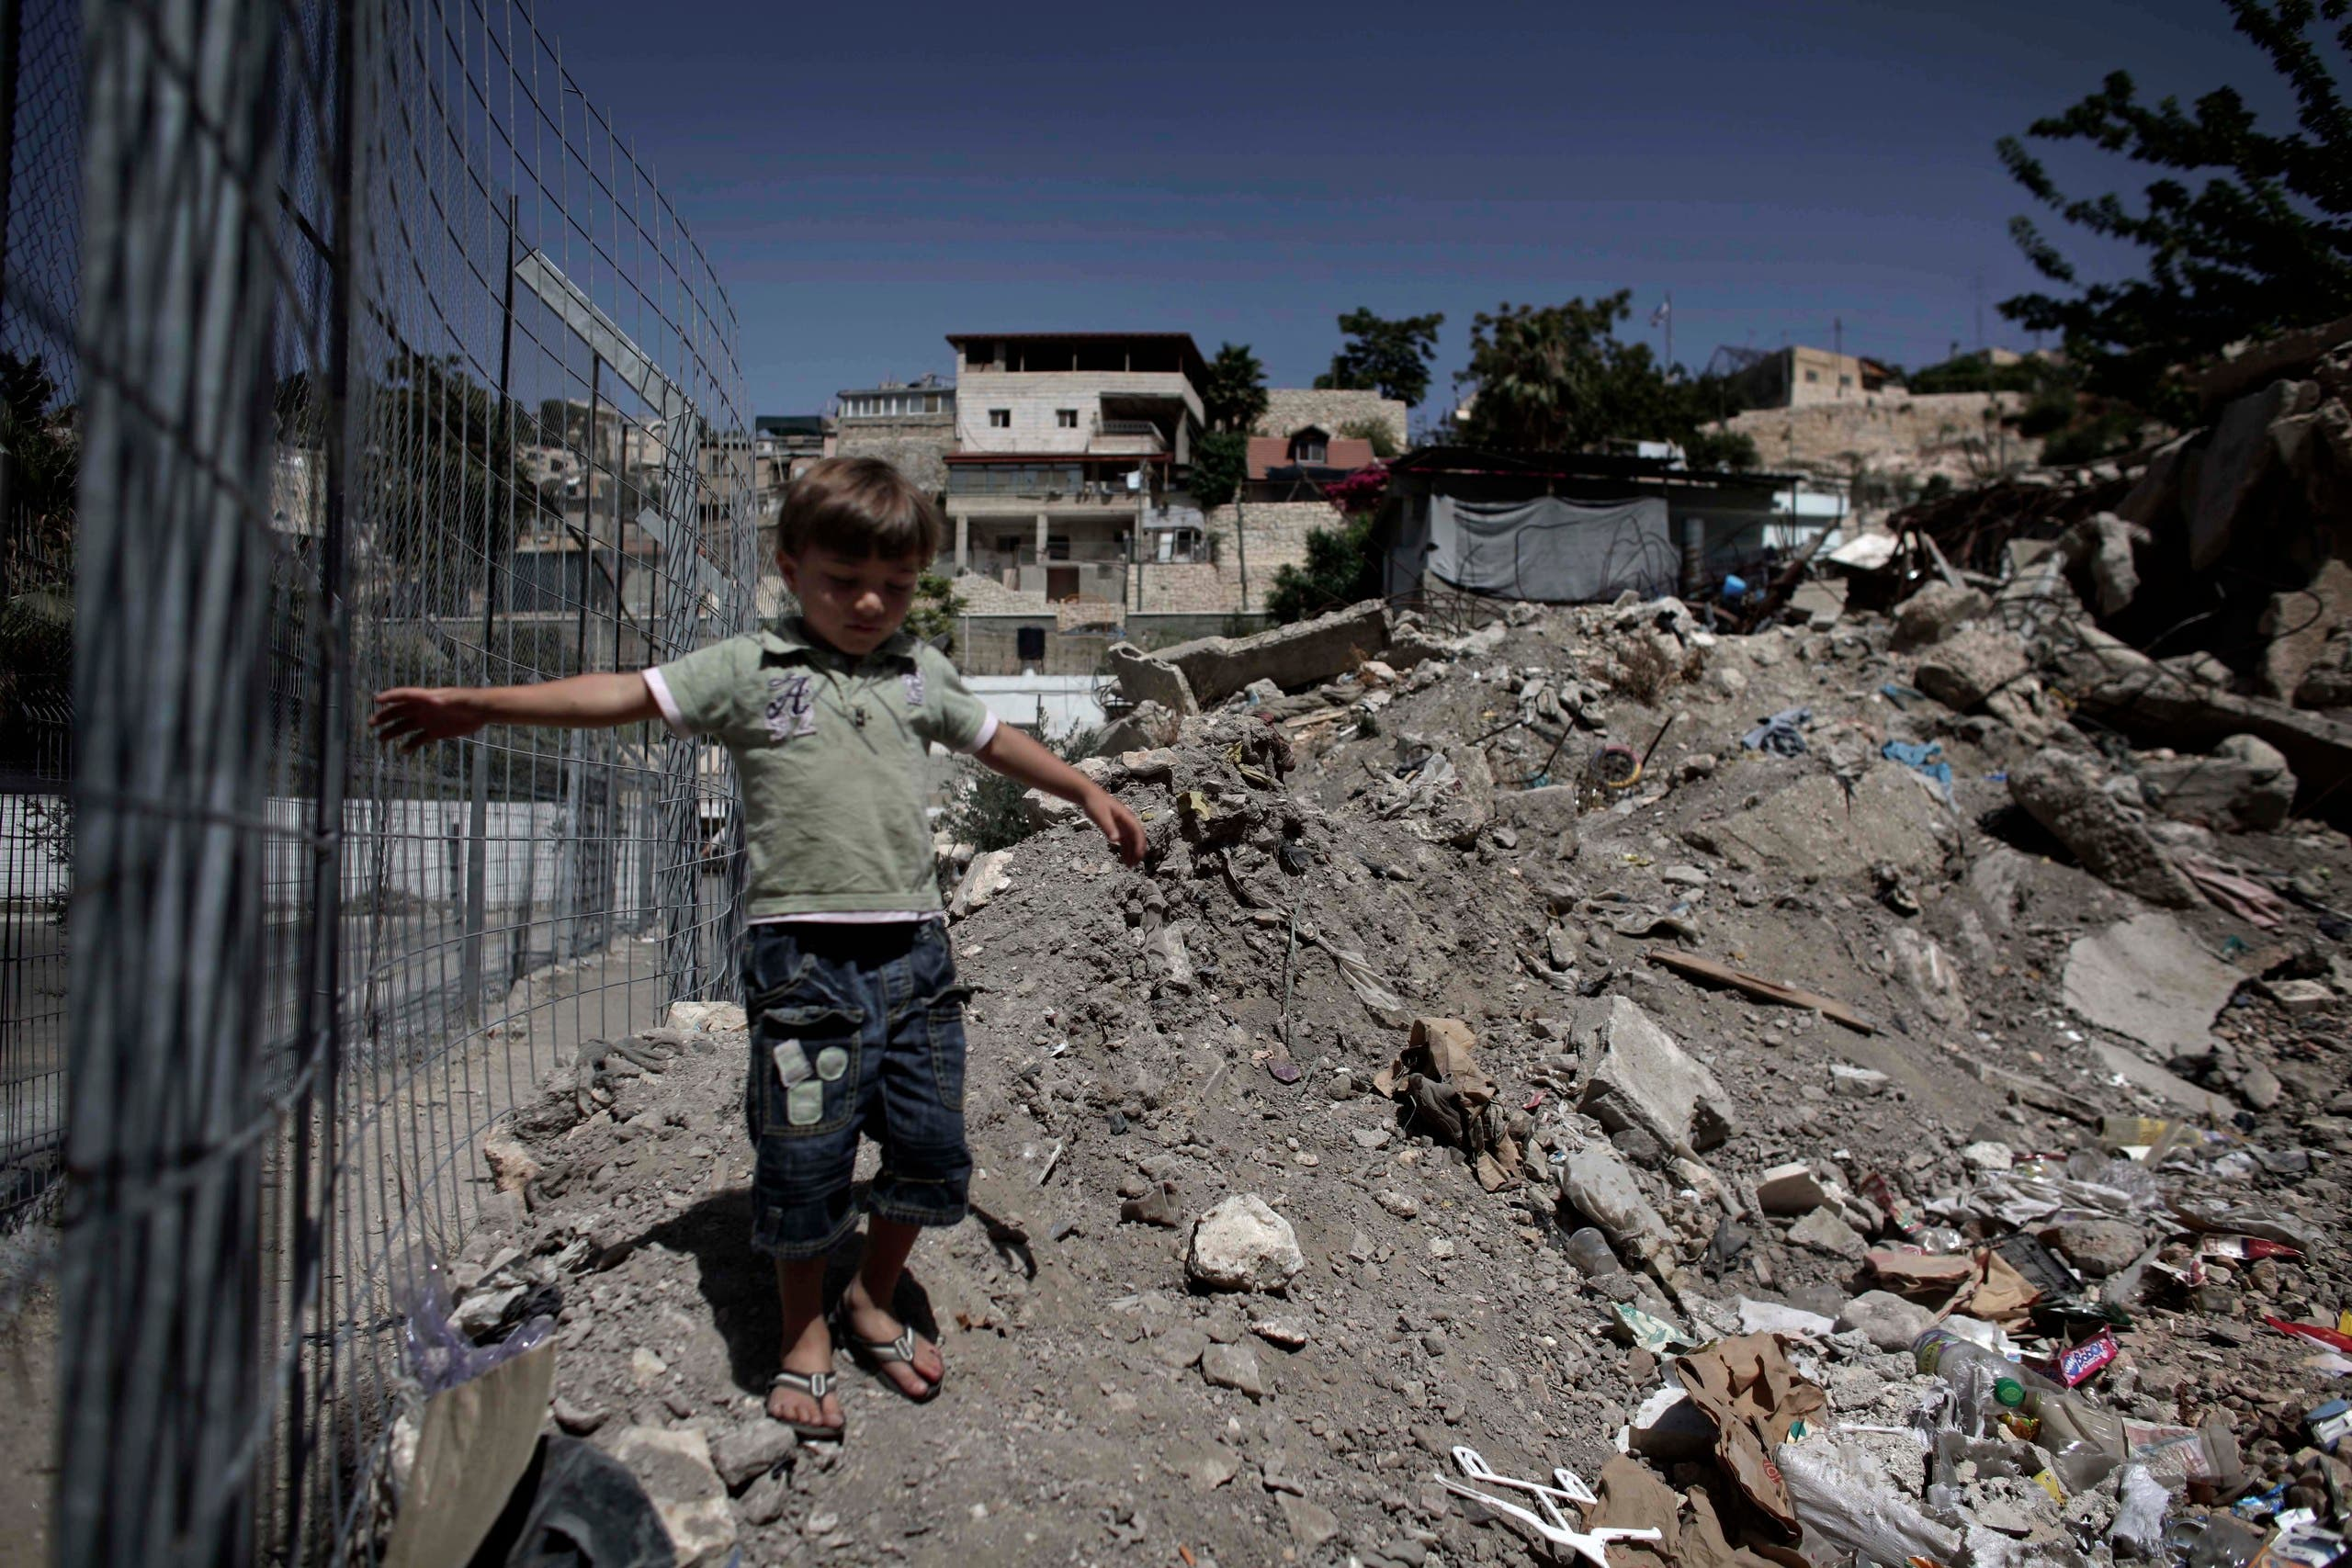 A Palestinian child walks near rubble in the East Jerusalem neighborhood of Silwan on June 21, 2010. (AP)